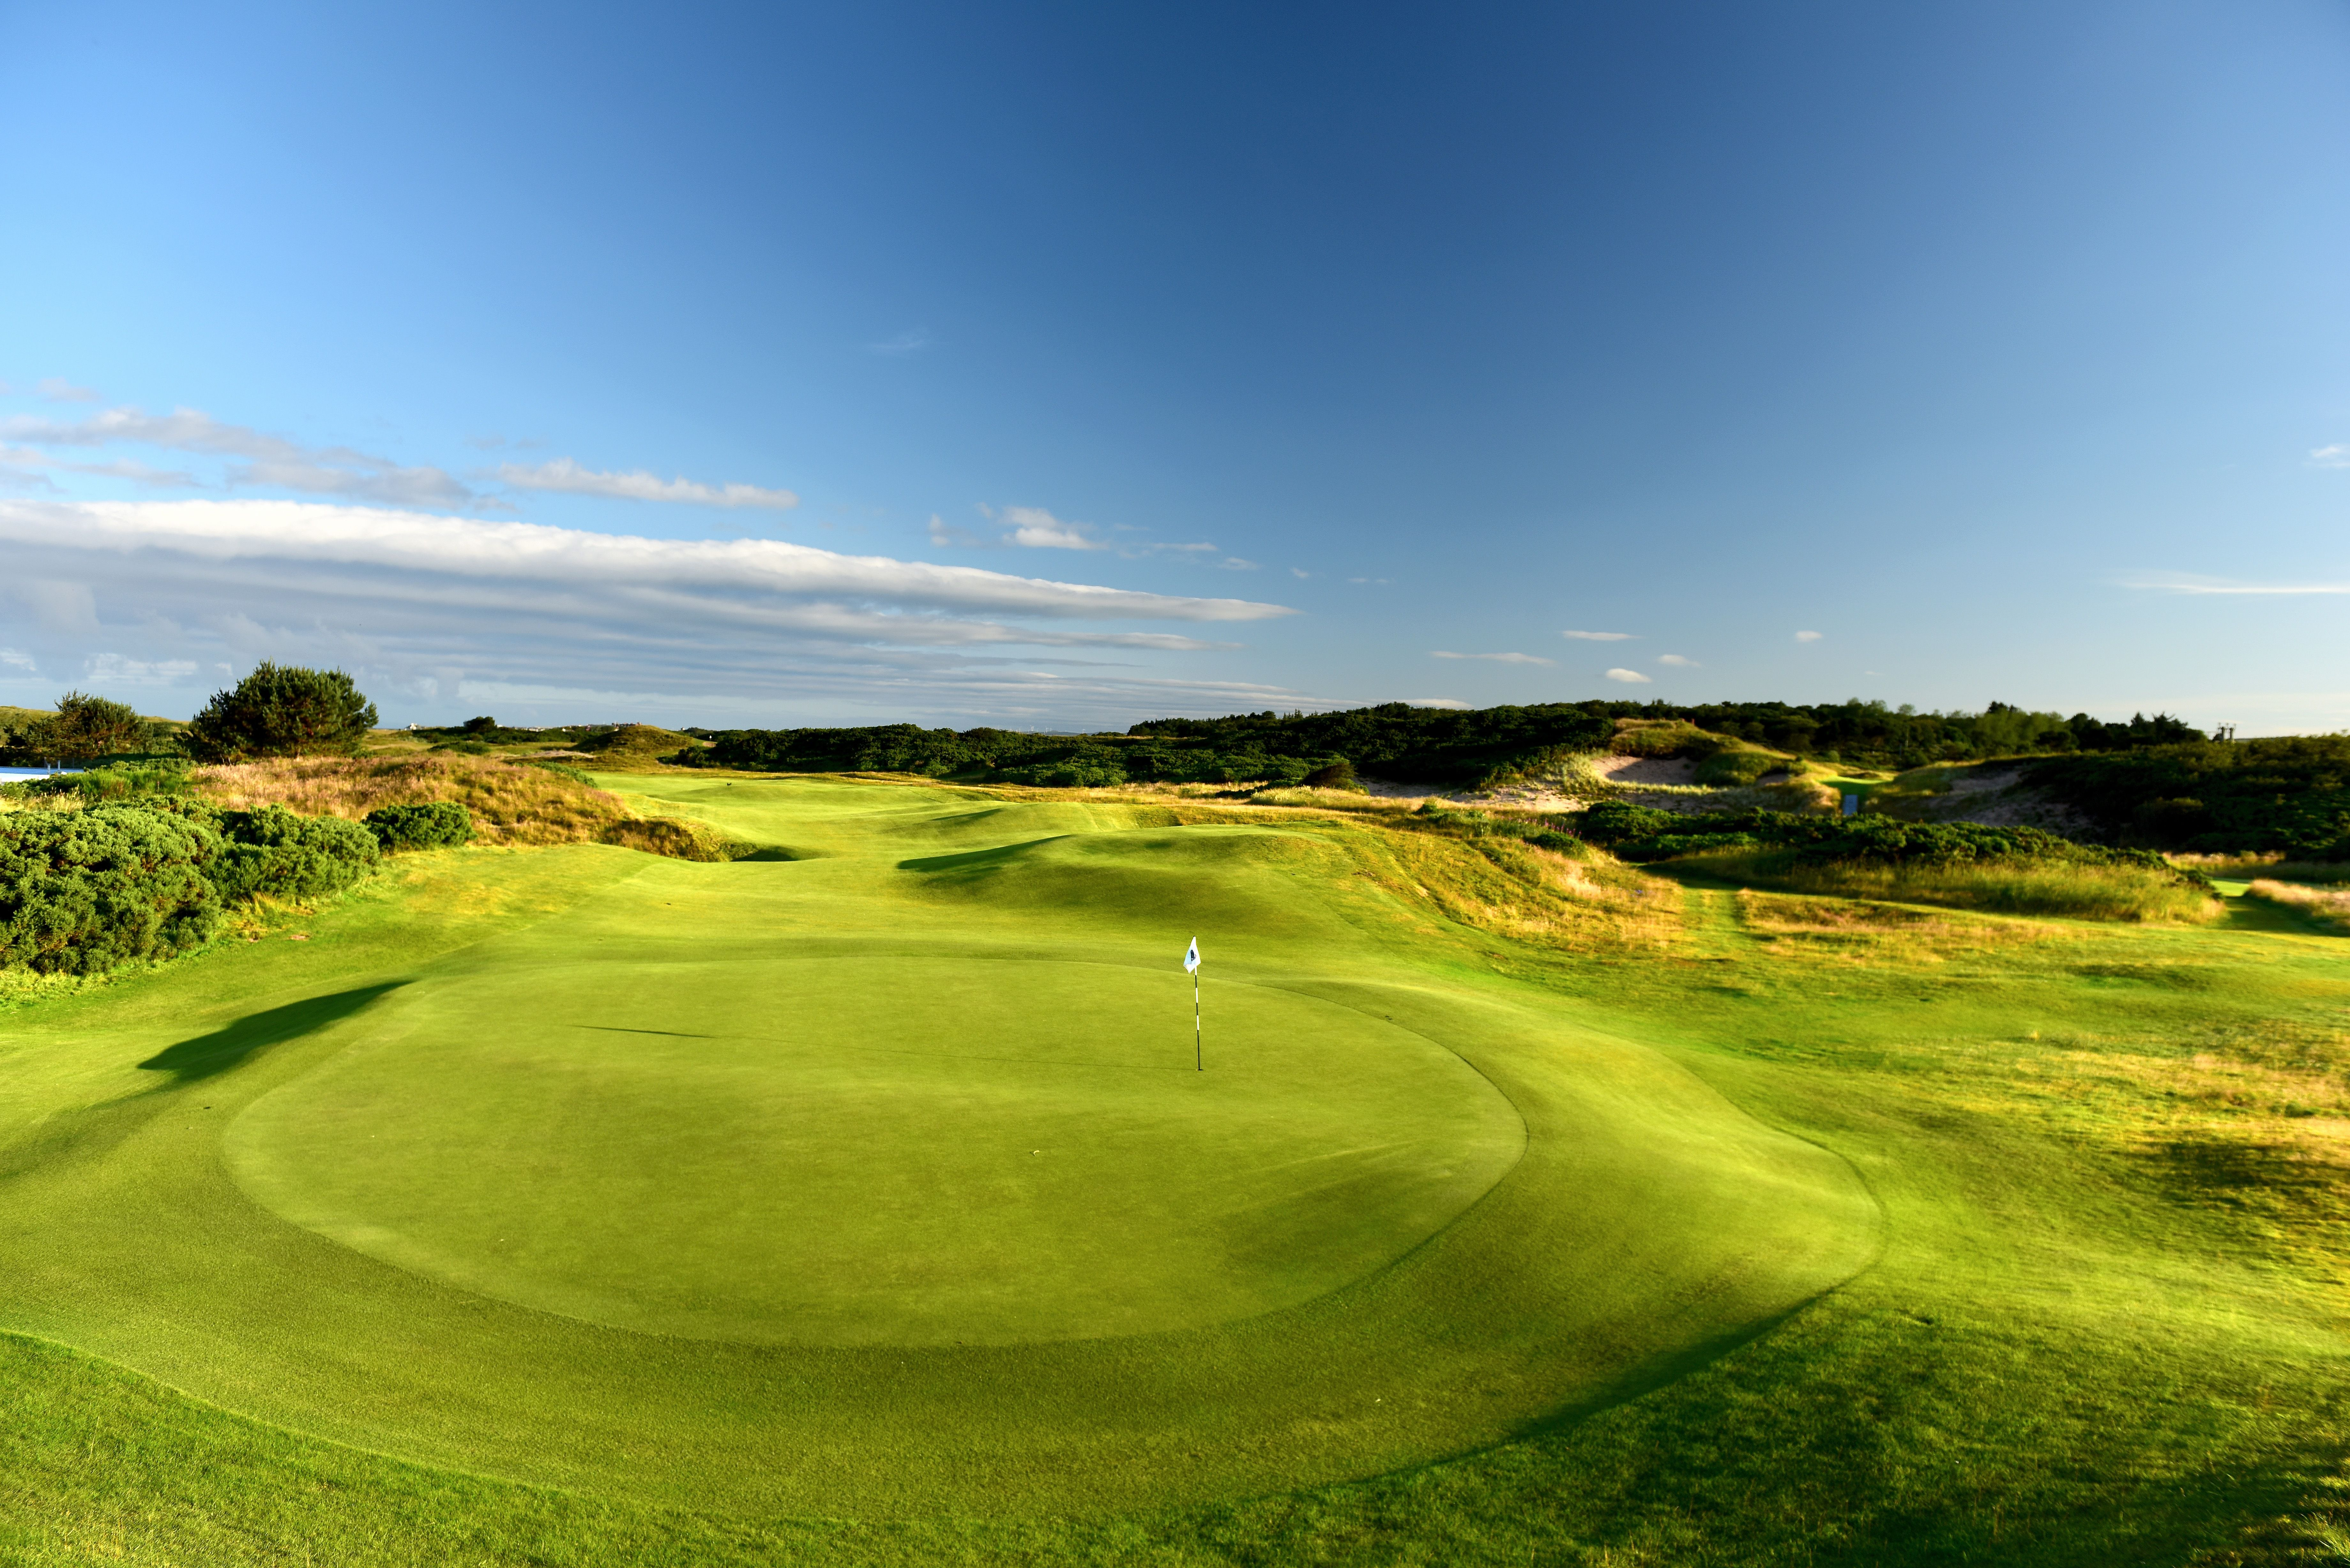 A view from behind the green on the 423 yards par 4, 9th hole at Royal Troon